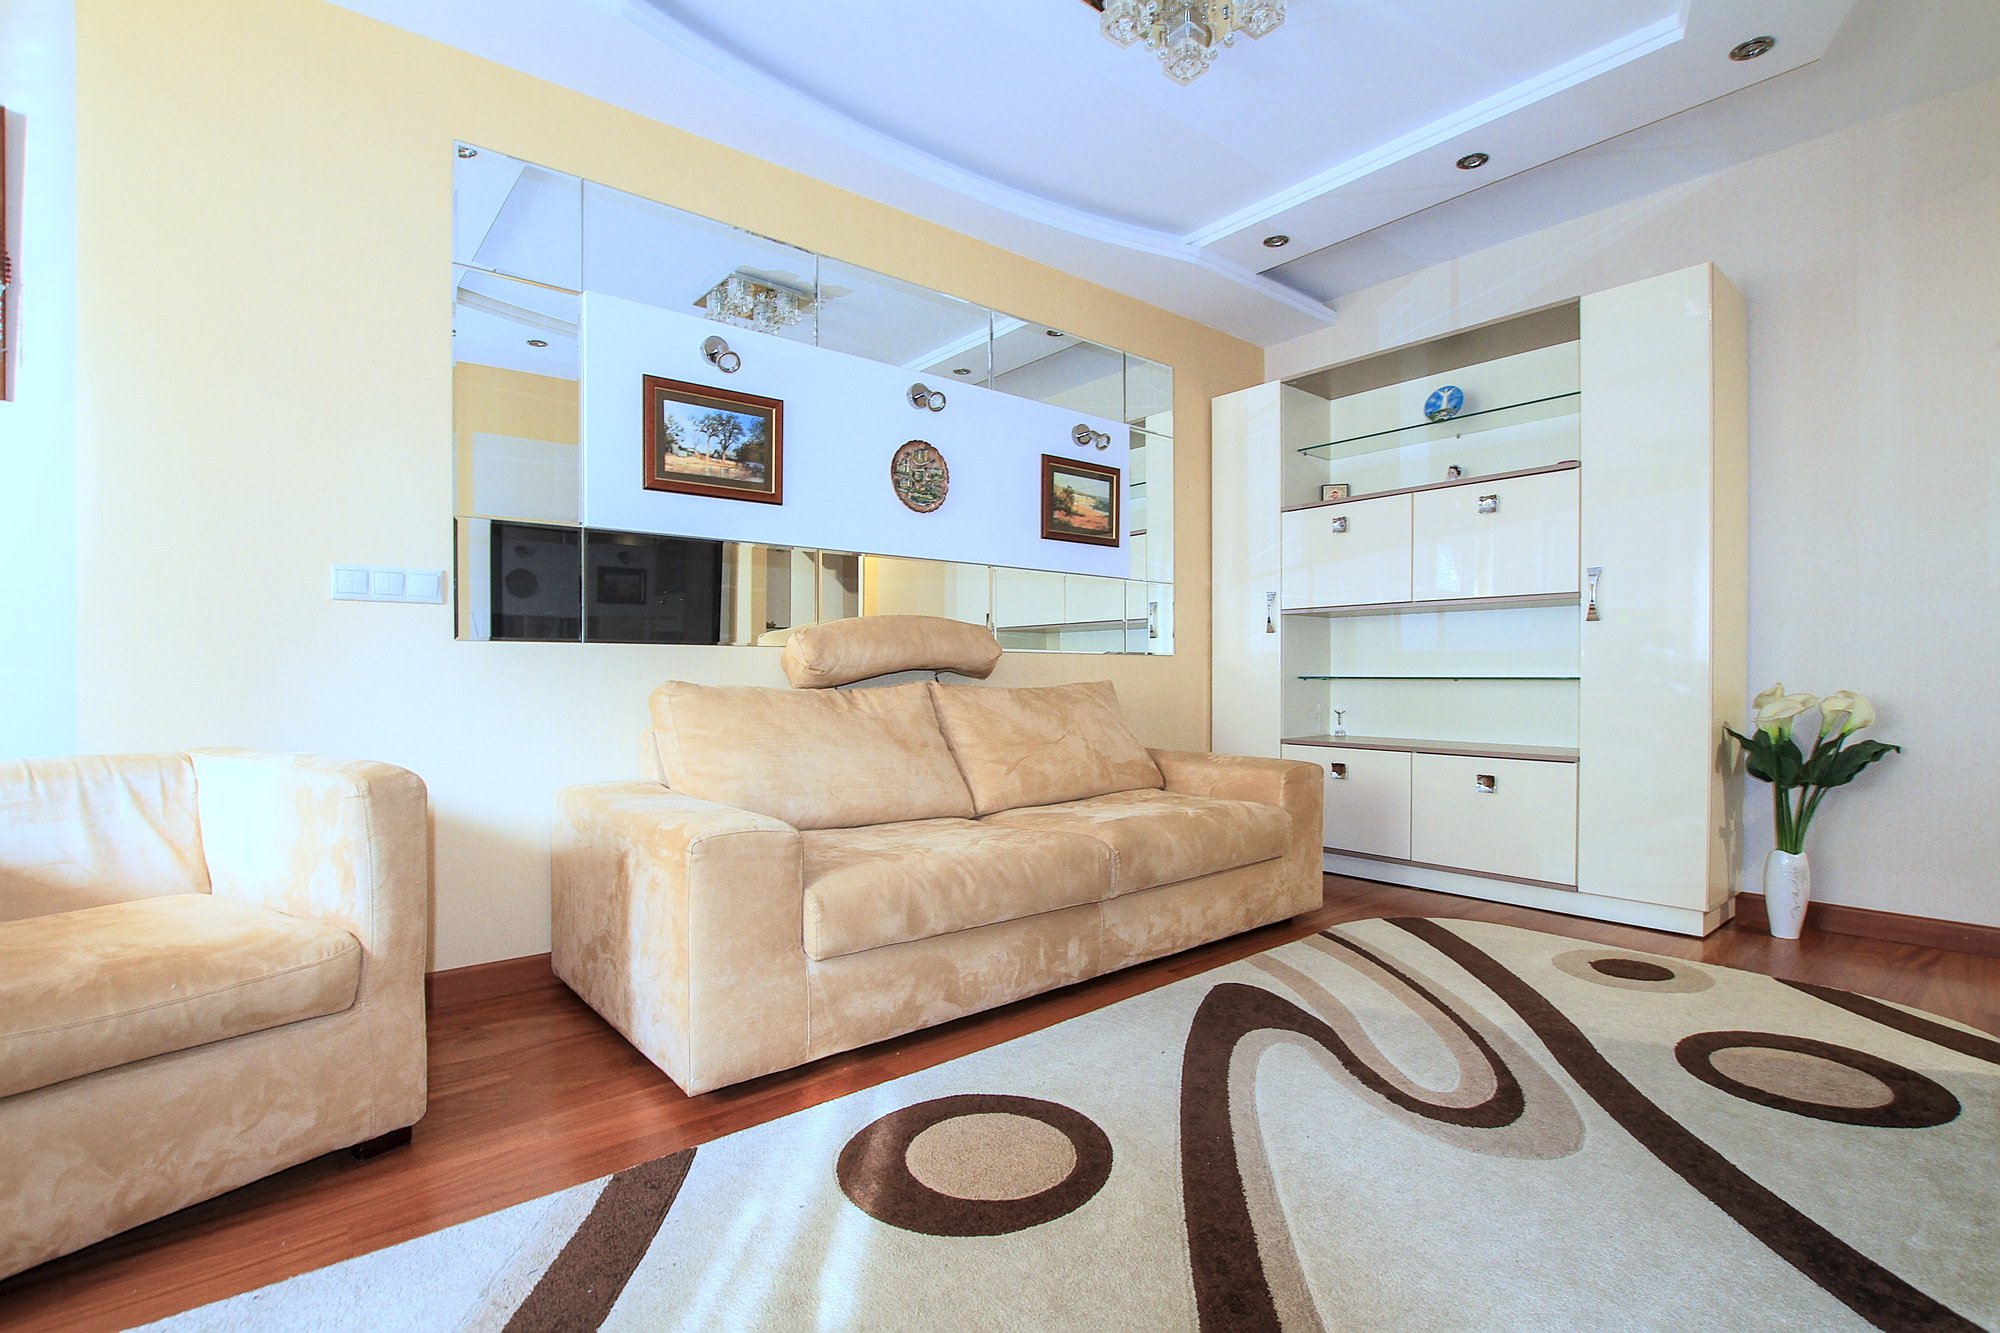 A-40-3-room-apartment-for-rent-in-Chisinau-Botanica_01.jpg